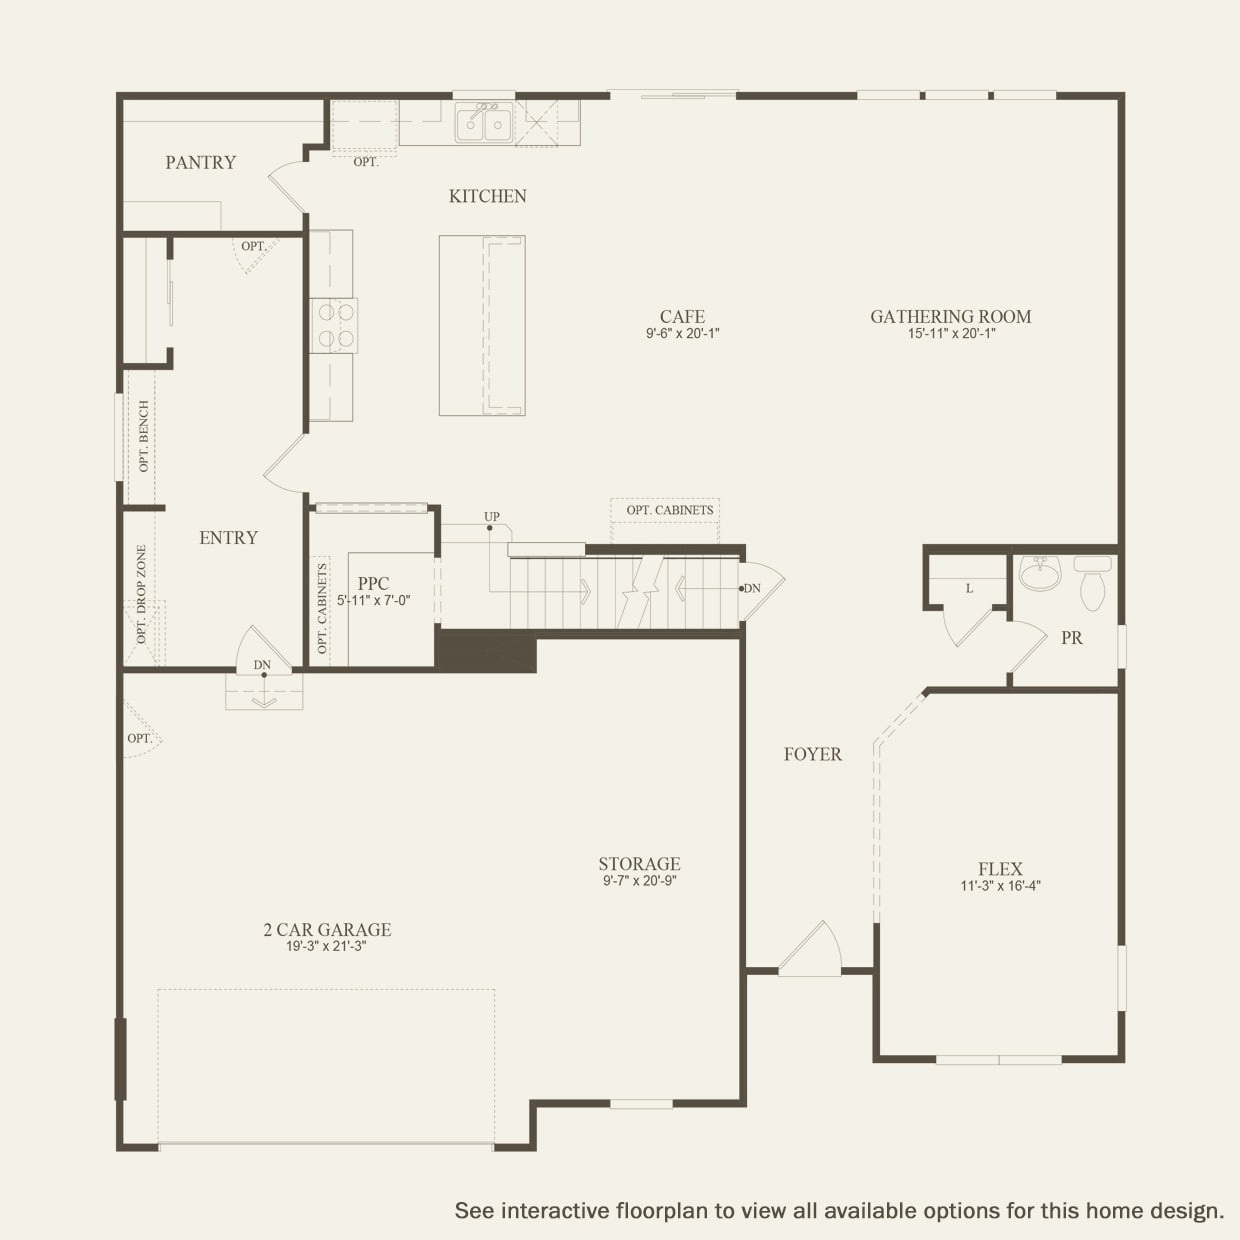 Westchester In Fishers At Hunters Run Pulte Gas Wiring Diagram Stove Whirlpool Sf 3300 First Floor